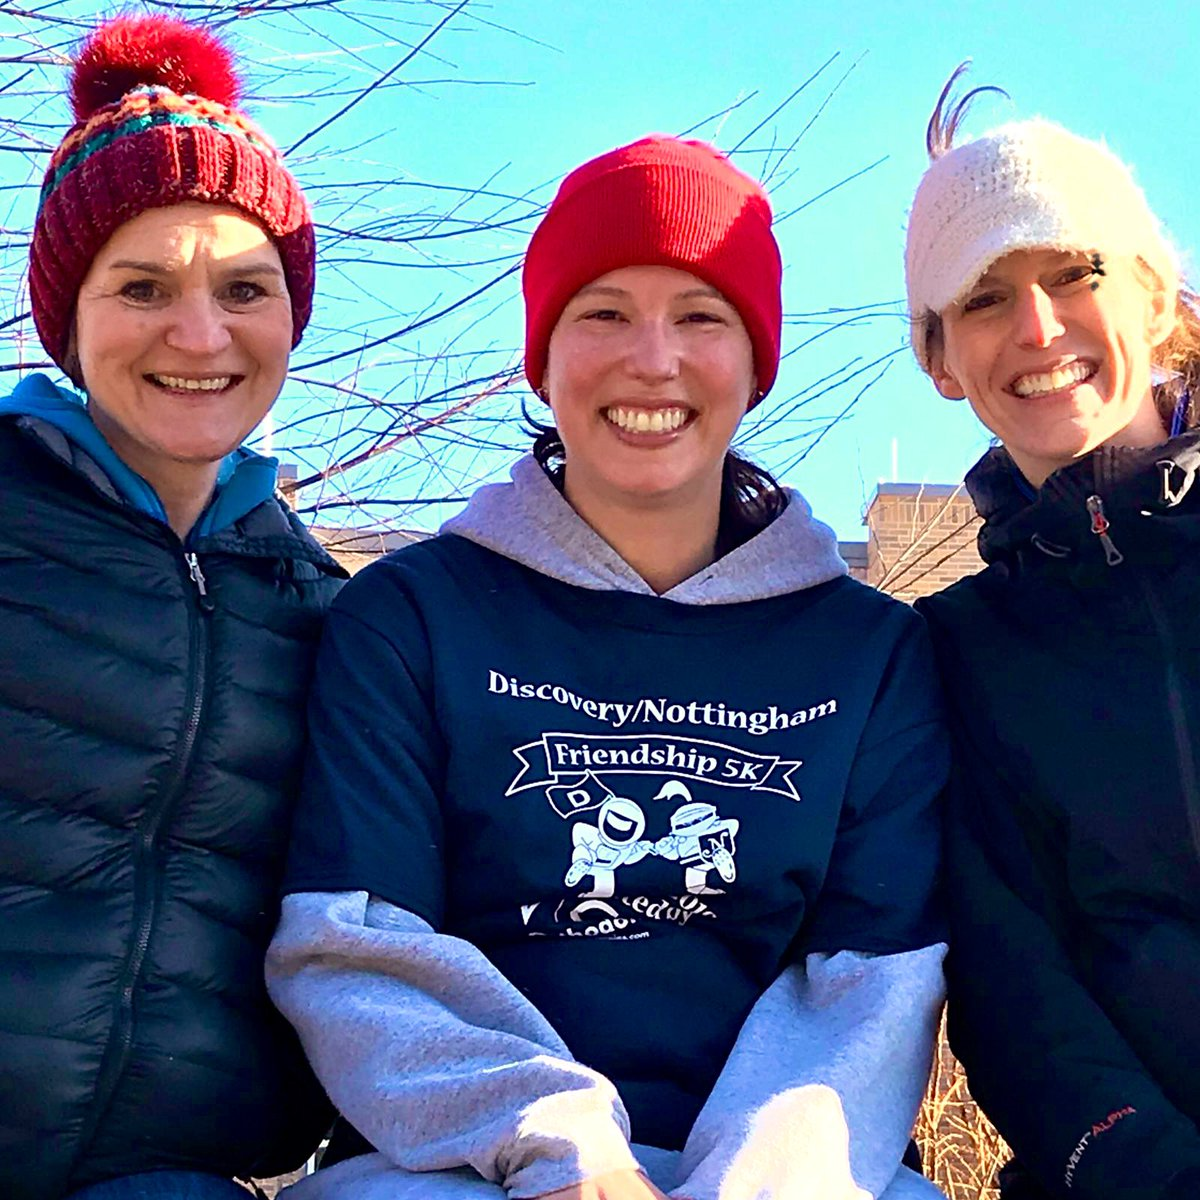 Discovery/Nottingham peeps gettin' their run at the Friendship 5K.  Brrrr, it's cold out there ❄️ <a target='_blank' href='http://twitter.com/APSMcKCardinals'>@APSMcKCardinals</a> <a target='_blank' href='http://twitter.com/DiscoveryESPTA'>@DiscoveryESPTA</a> <a target='_blank' href='http://twitter.com/NottinghamPTA'>@NottinghamPTA</a> <a target='_blank' href='http://twitter.com/RussoErin'>@RussoErin</a> <a target='_blank' href='http://twitter.com/EGardnerAPS'>@EGardnerAPS</a> <a target='_blank' href='http://twitter.com/MrsMeganLynch'>@MrsMeganLynch</a> <a target='_blank' href='https://t.co/PFq8AvtViI'>https://t.co/PFq8AvtViI</a>